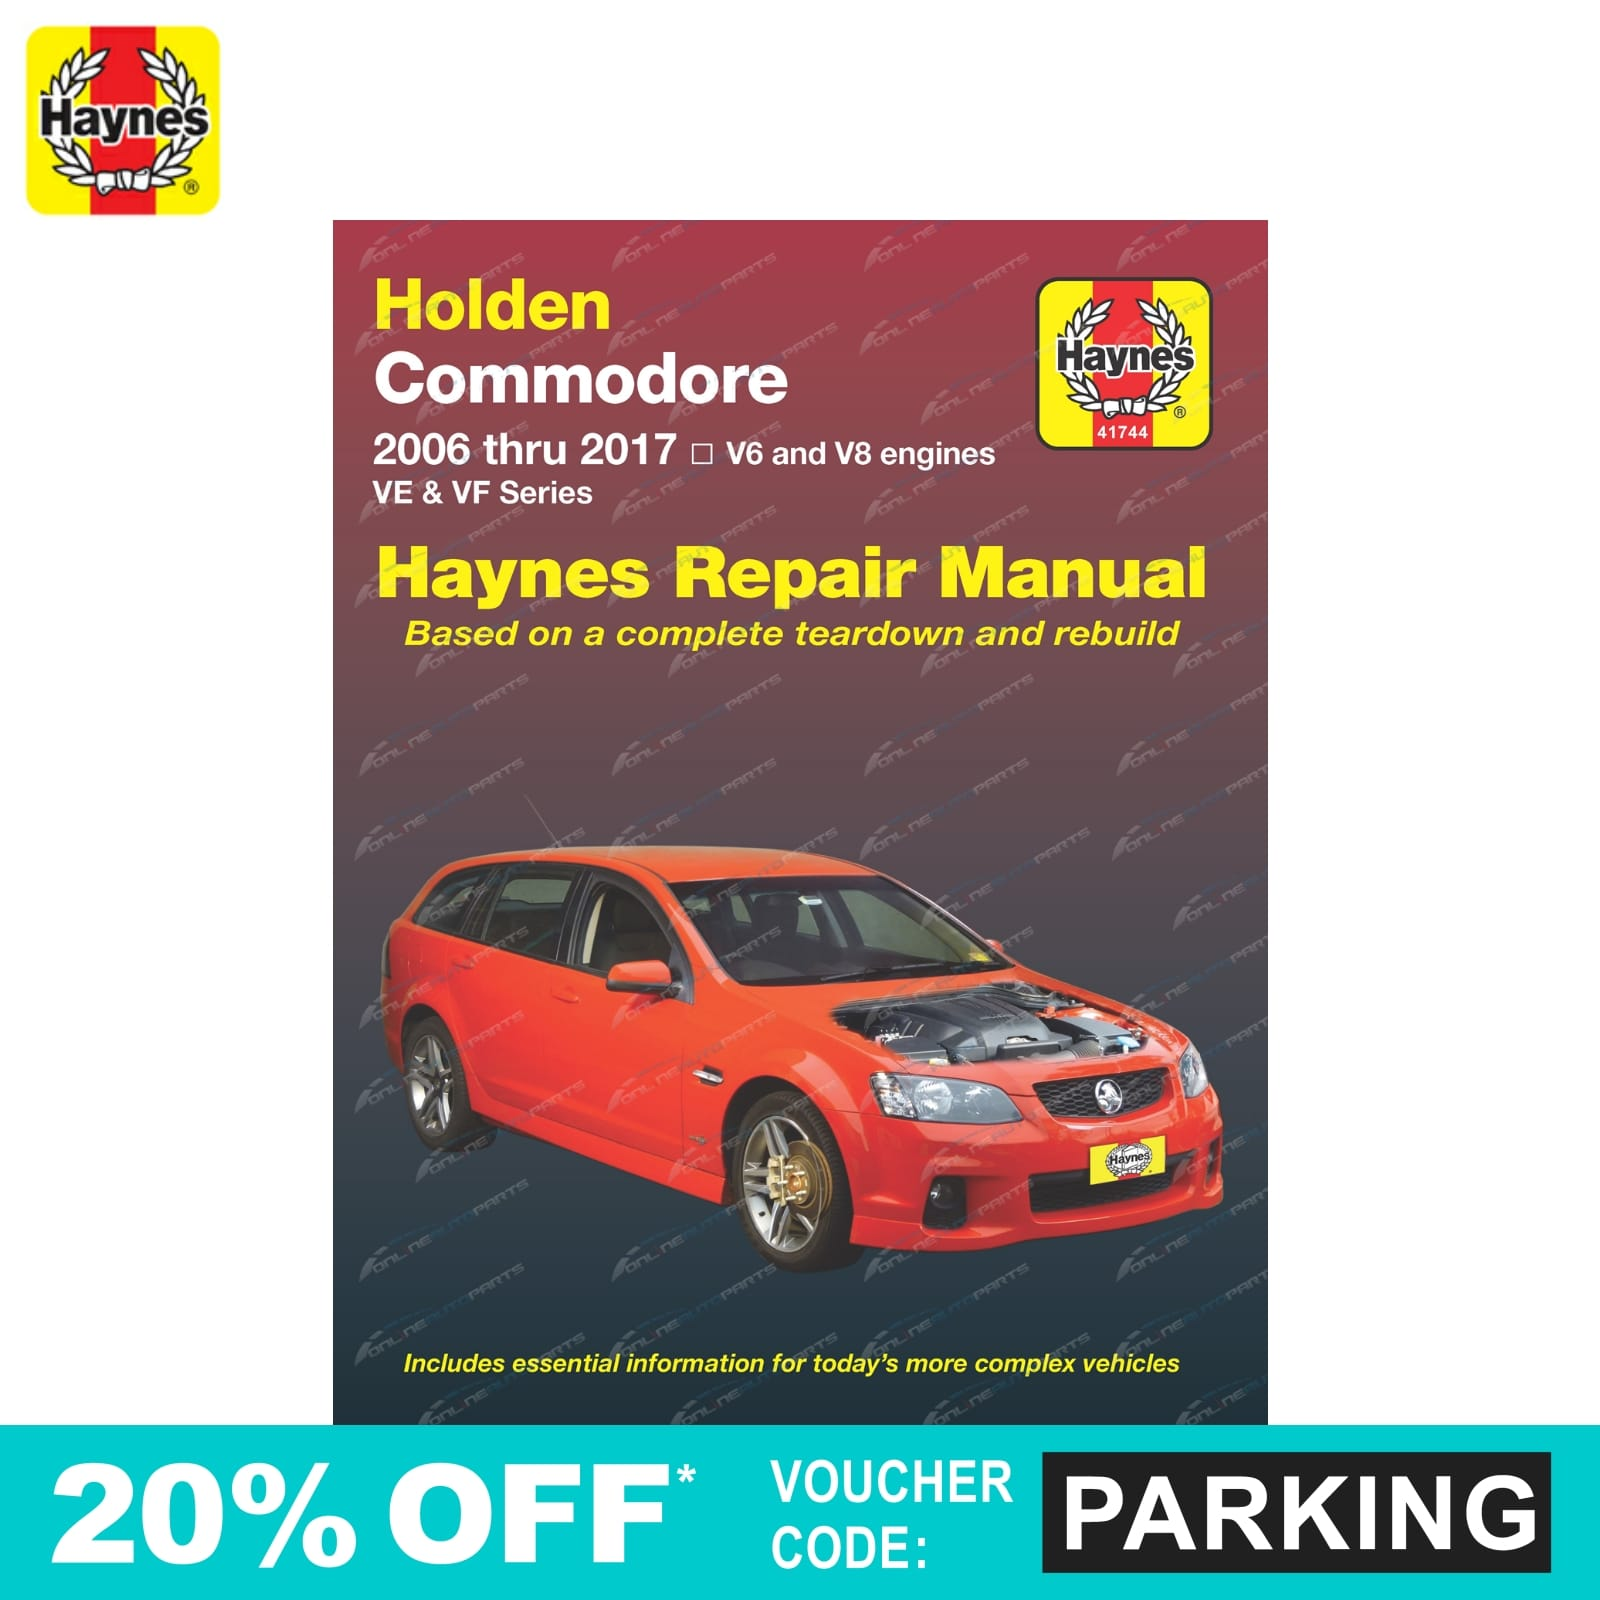 Hhr Owners Manual Ebook 2009 Suzuki Gsf1250sa Starter Motor Components And Parts Diagram Array Holden Commodore 2006 Service Various Owner Rh